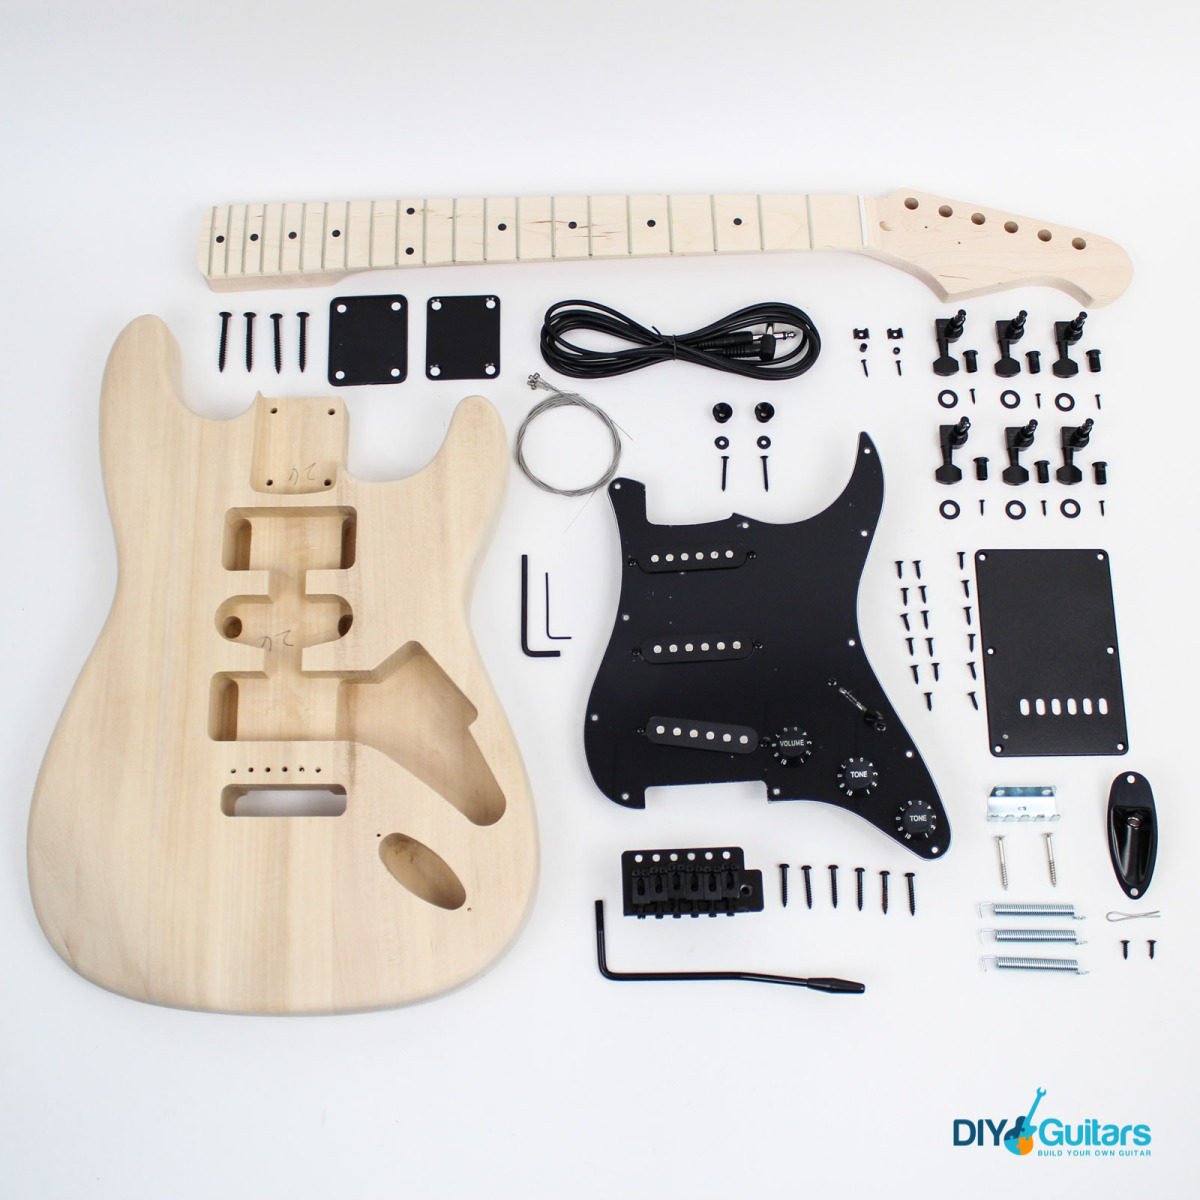 fender stratocaster style guitar kit diy guitars. Black Bedroom Furniture Sets. Home Design Ideas